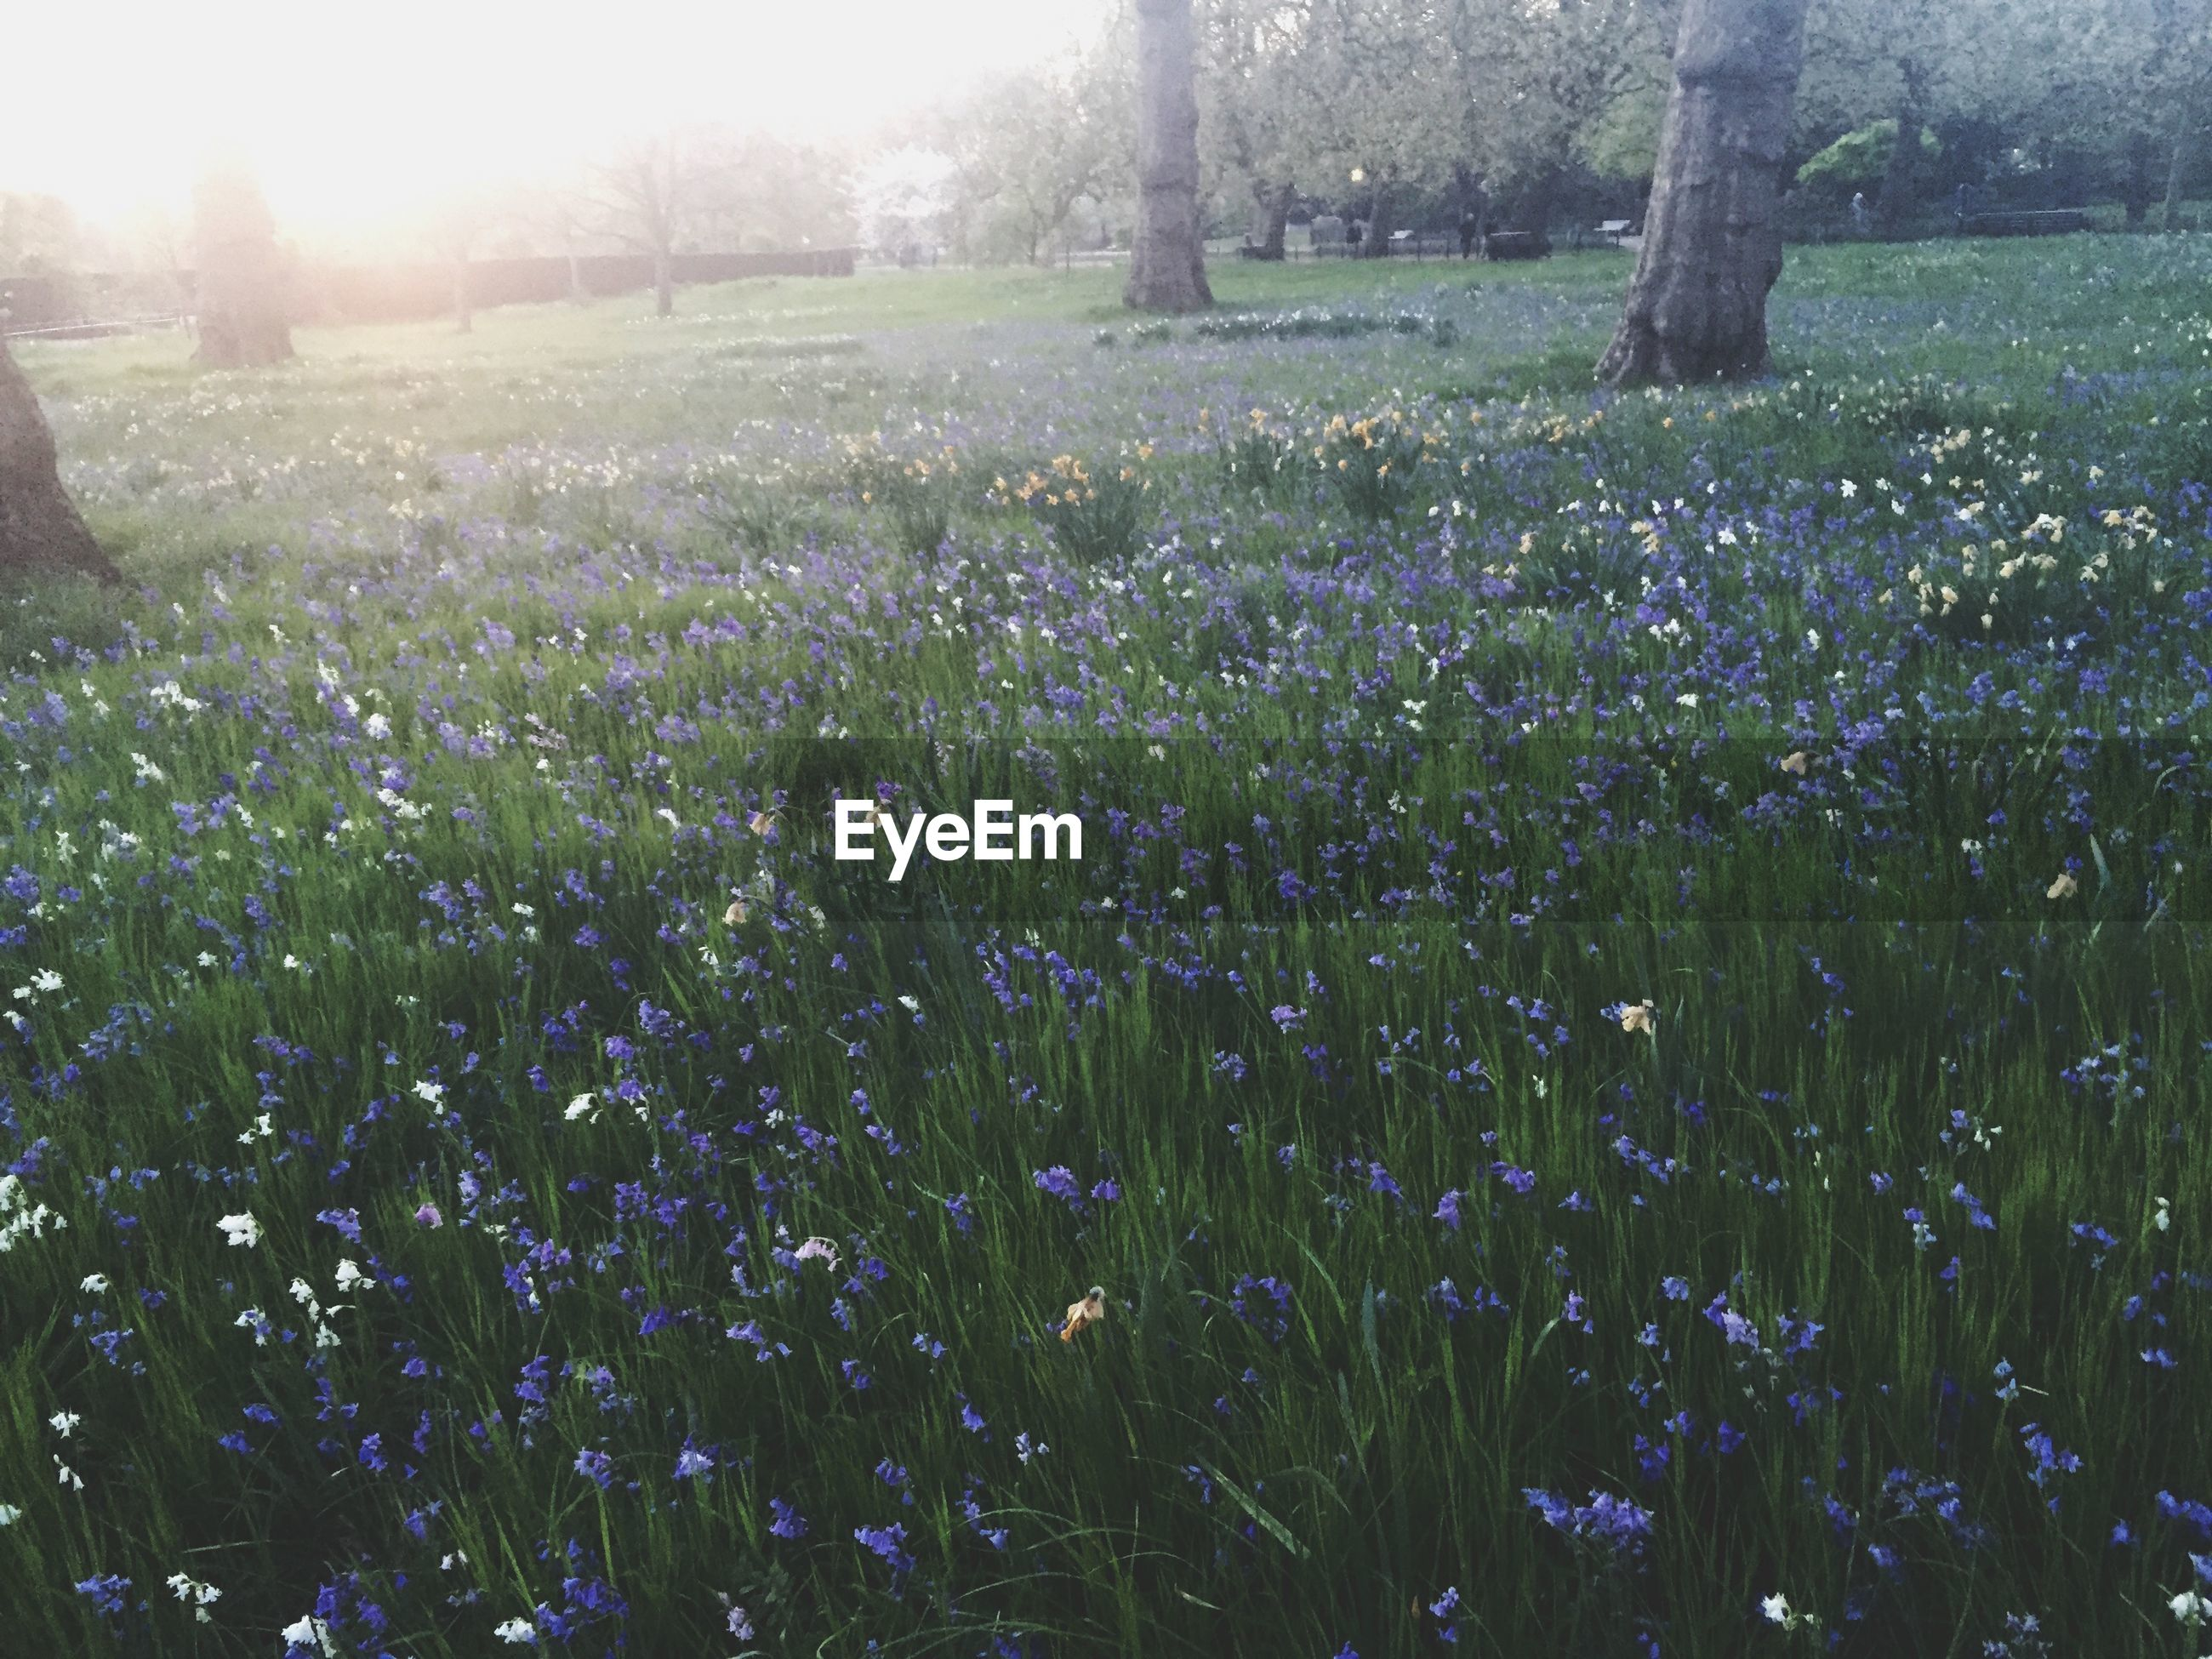 flower, growth, beauty in nature, field, freshness, grass, nature, sunlight, fragility, tranquility, plant, tranquil scene, tree, park - man made space, sunbeam, blooming, landscape, green color, scenics, petal